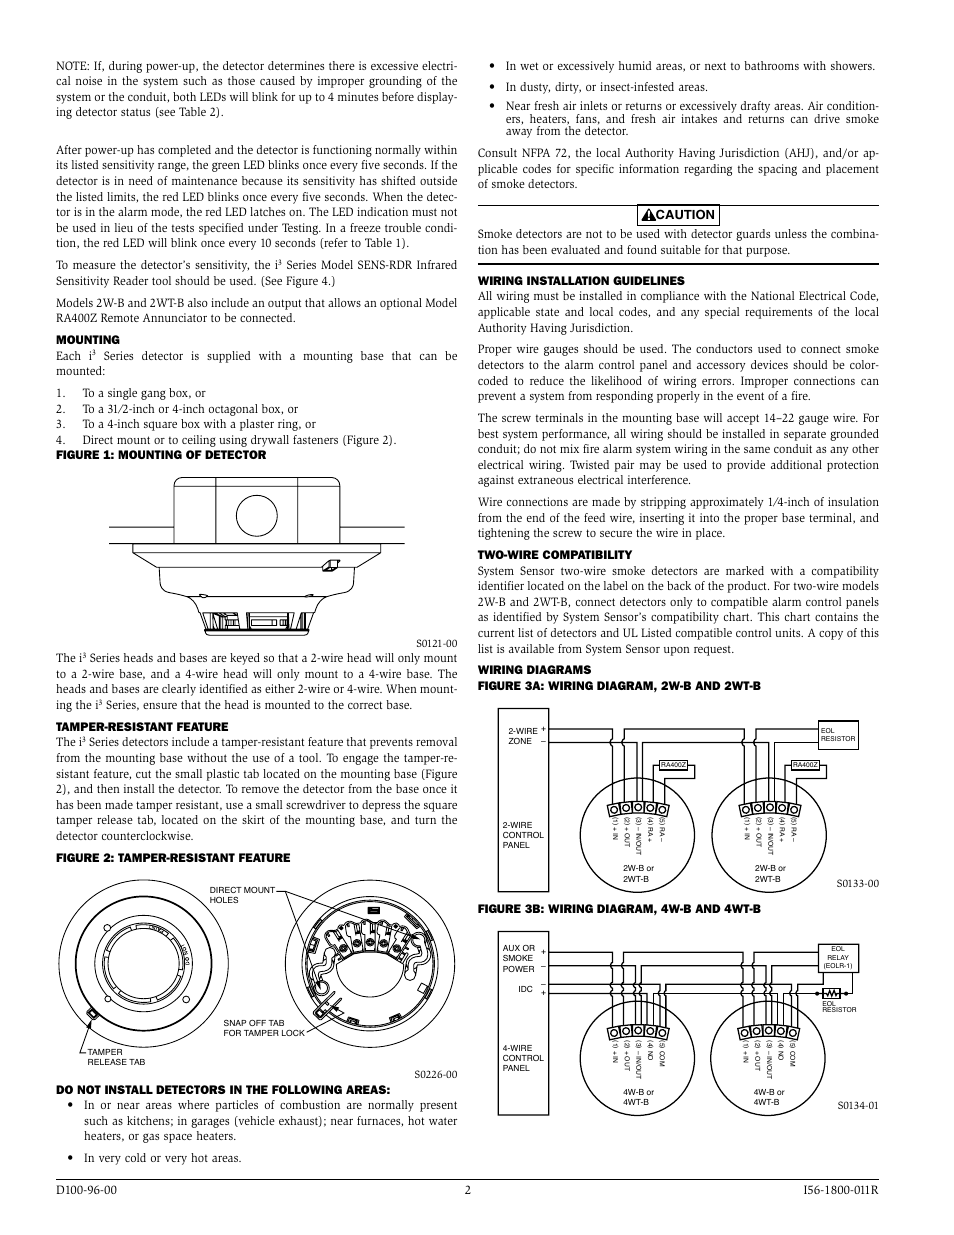 hight resolution of the i figure 3b wiring diagram 4w b and 4wt b system sensor i3 series smoke detectors user manual page 2 4